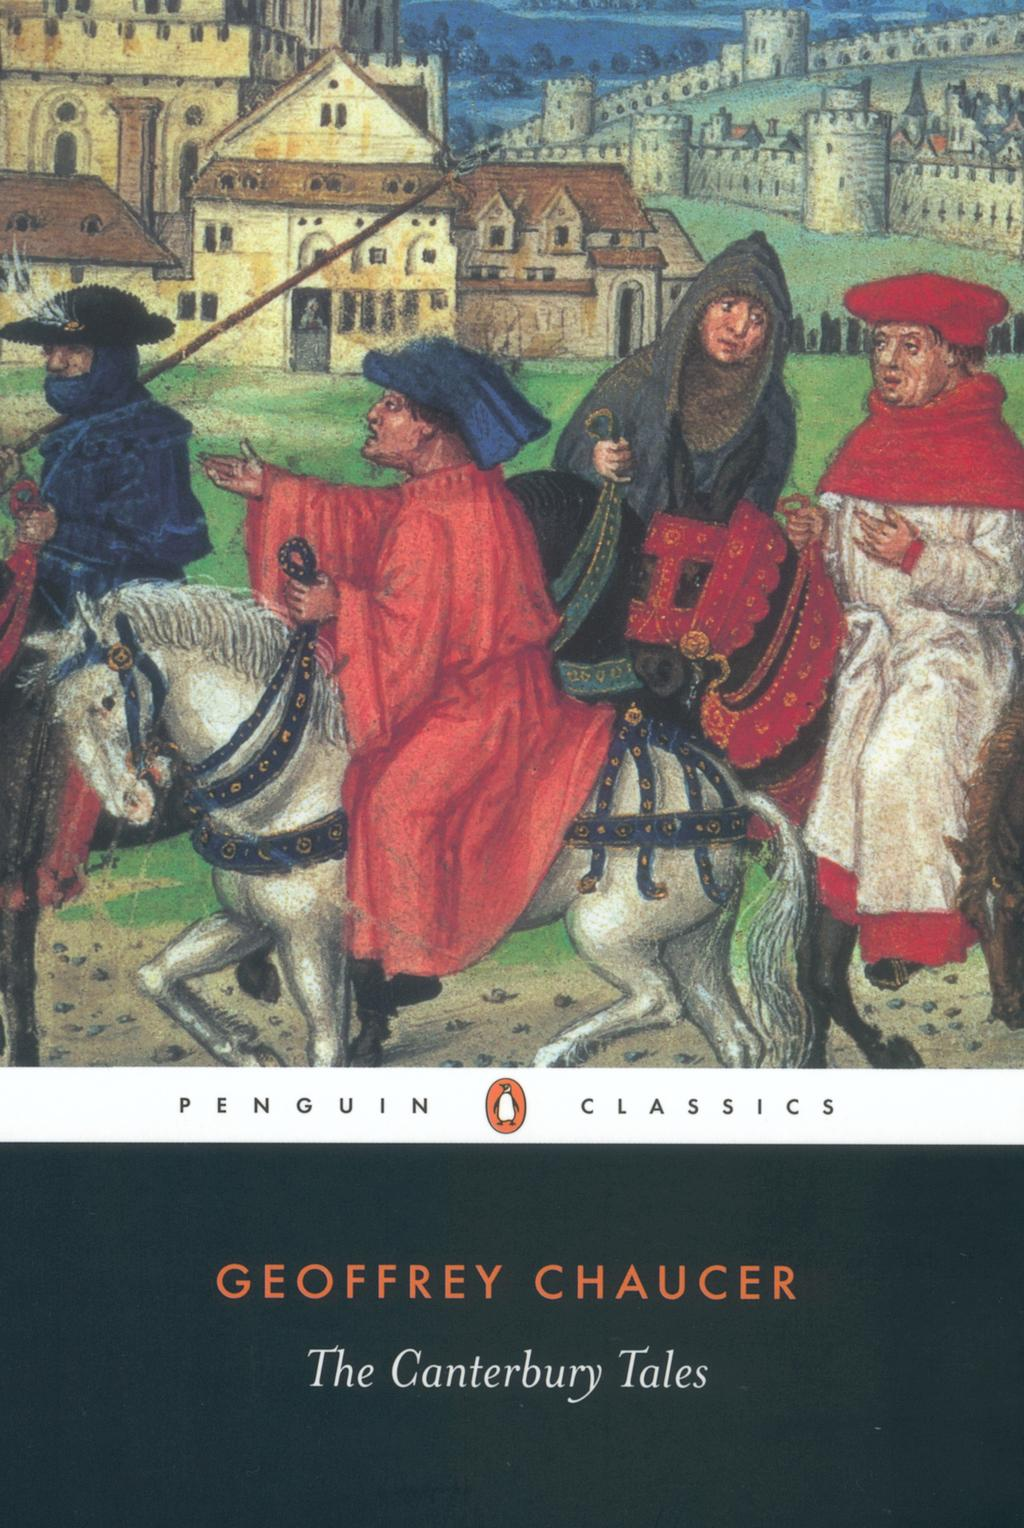 an analysis of the black knight in the book of the duchess by geoffrey chaucer The book of the duchess, one of chaucer's earliestpoems/ has traditionallybeen read as an elegy for blanche, duchess of lancaster, who died inseptember, 1369, and as an attempt.